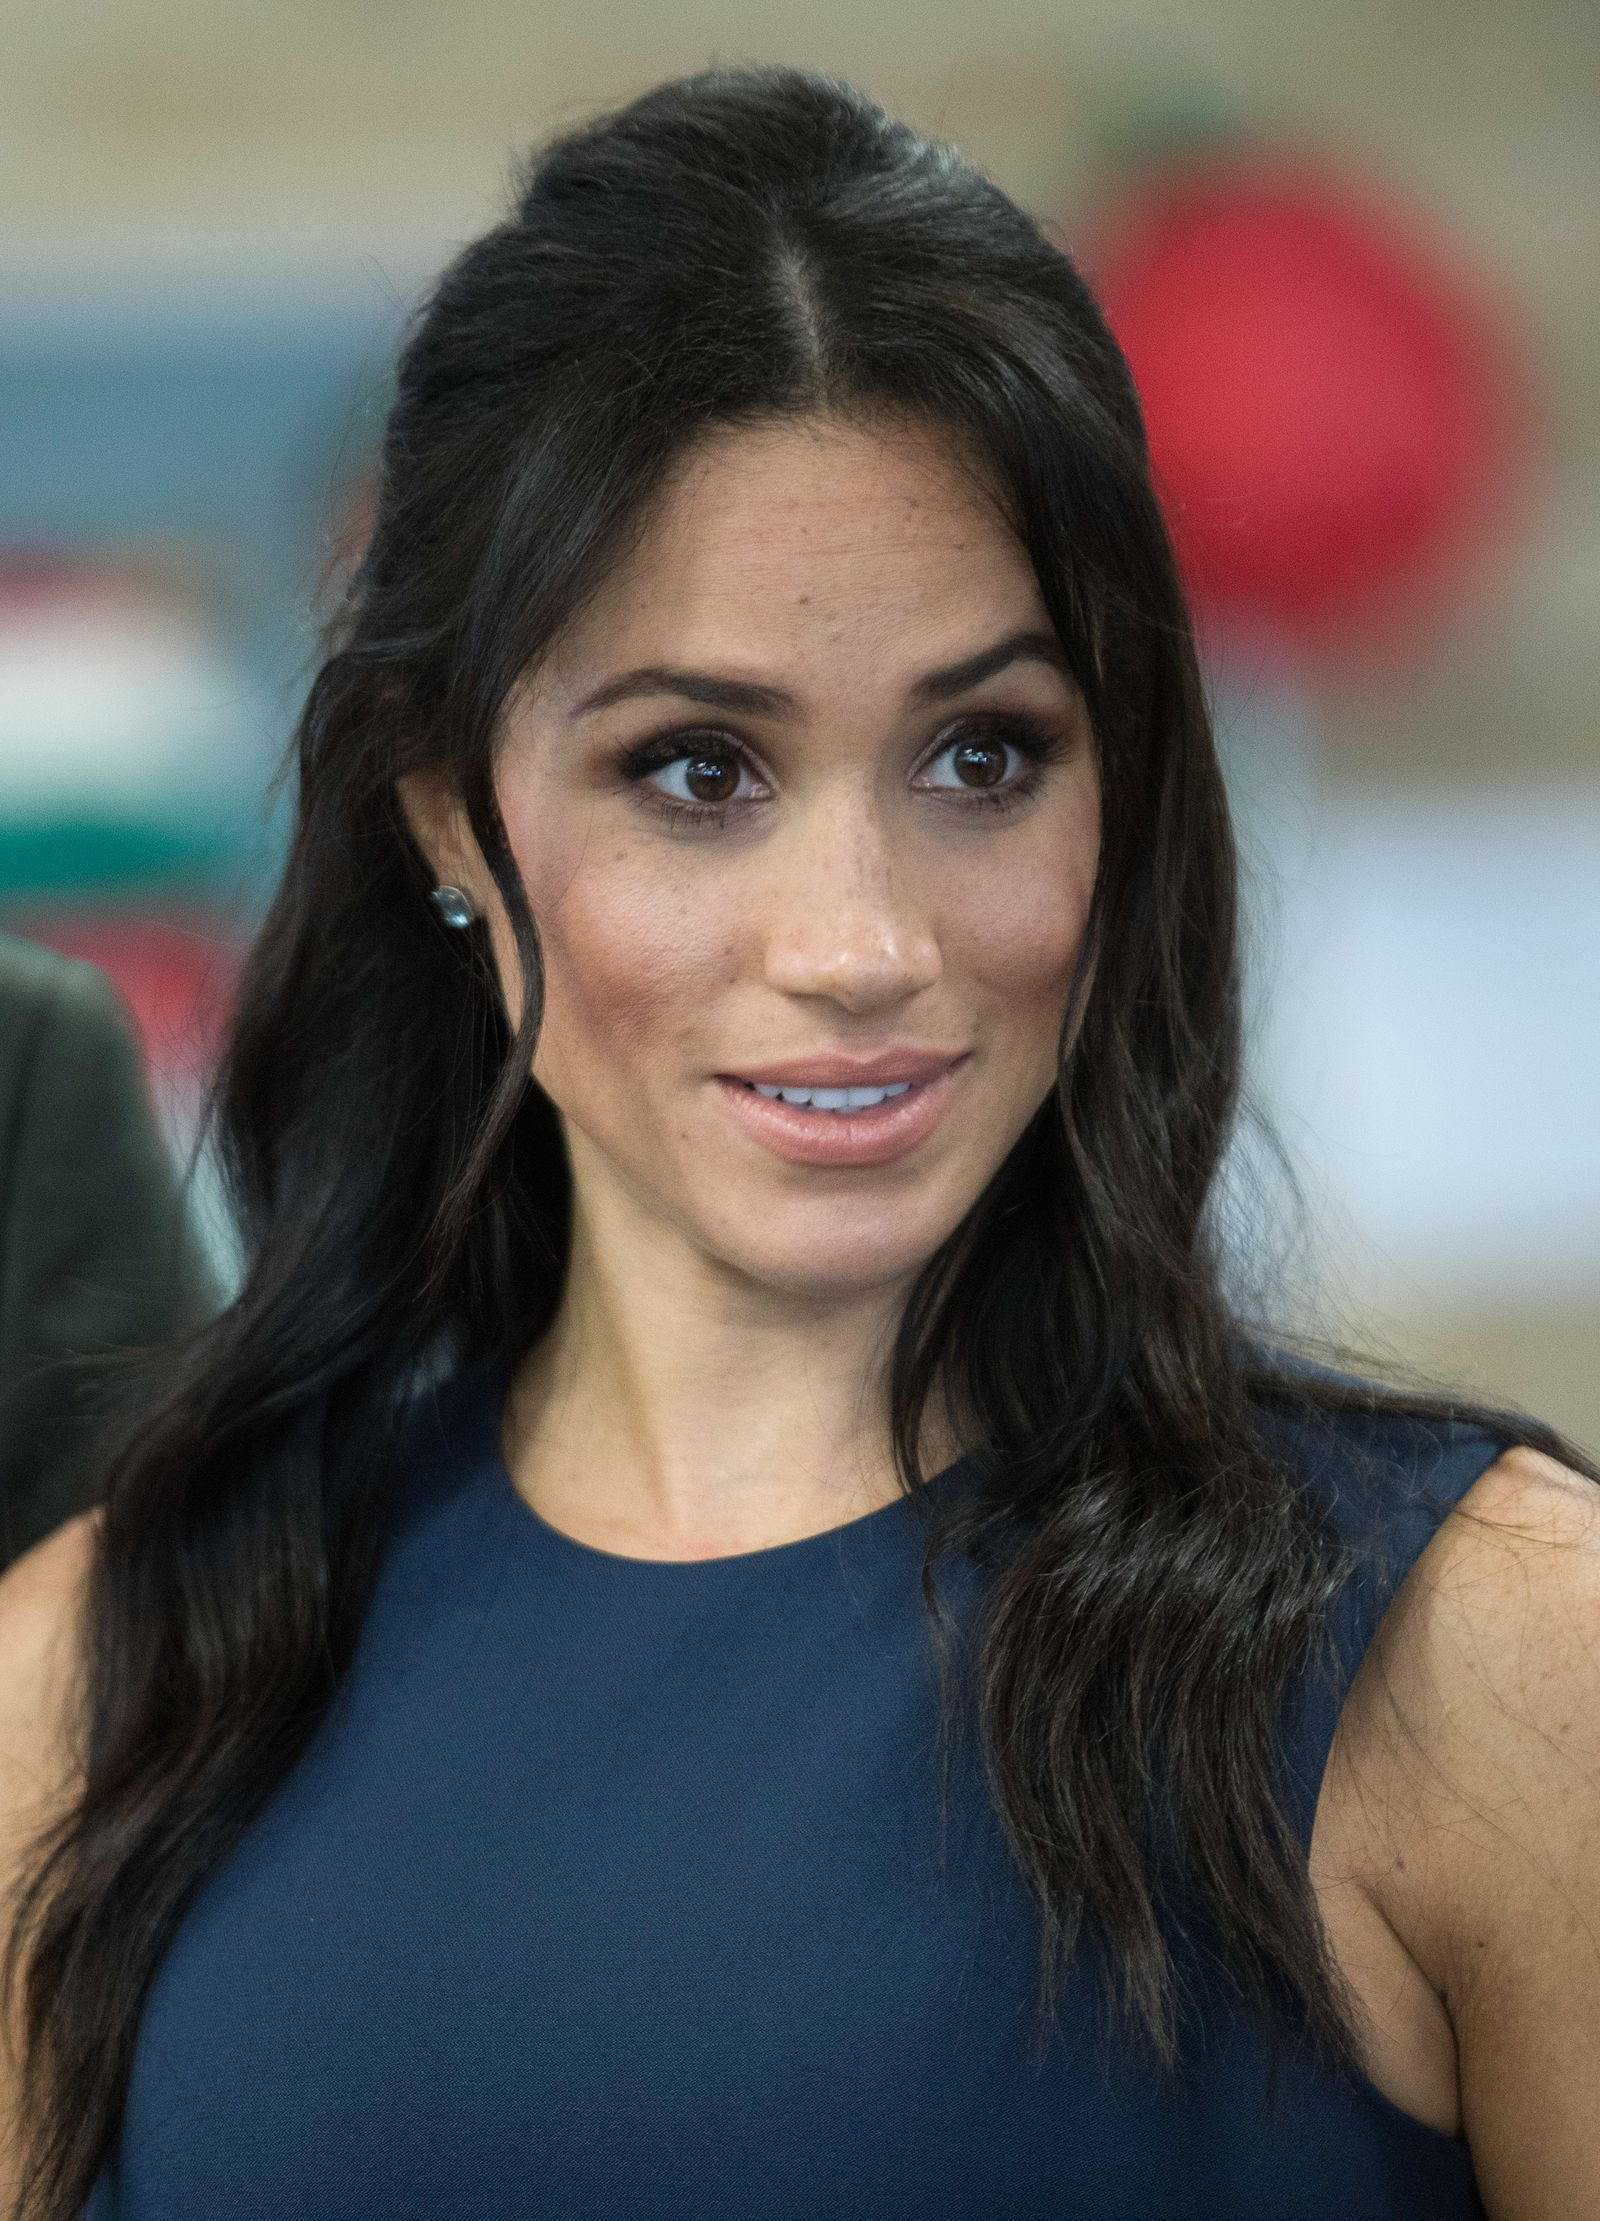 you re going to want to copy meghan markle s new hairstyle asap meghan markle hair hairstyle bump hairstyles meghan markle hair